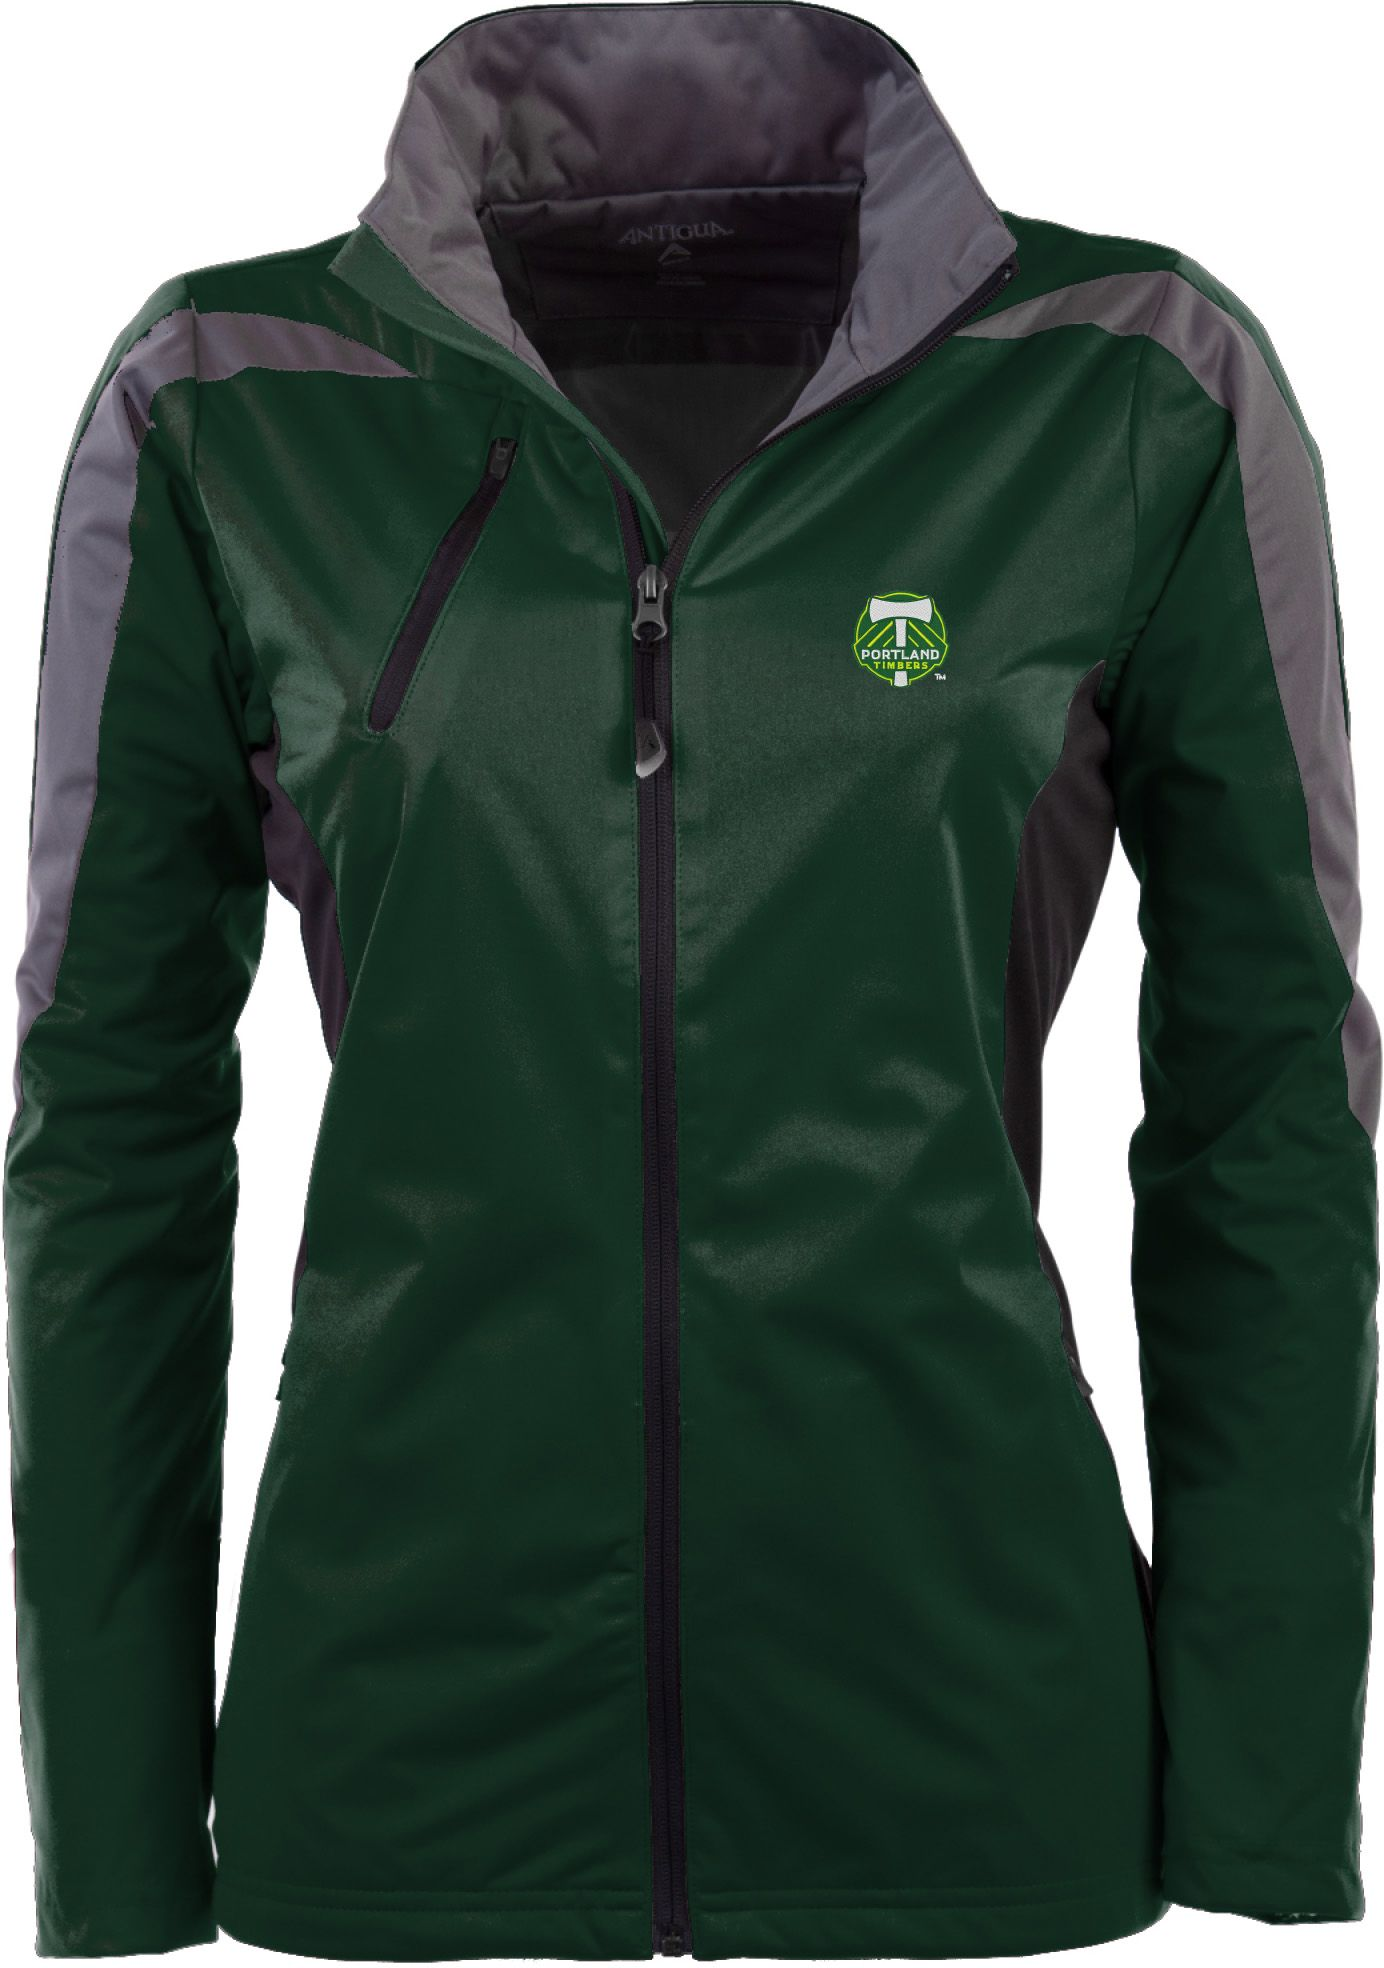 Antigua Women's Portland Timbers Hunter Green Discover Full-Zip Jacket, Size: Small, Team thumbnail